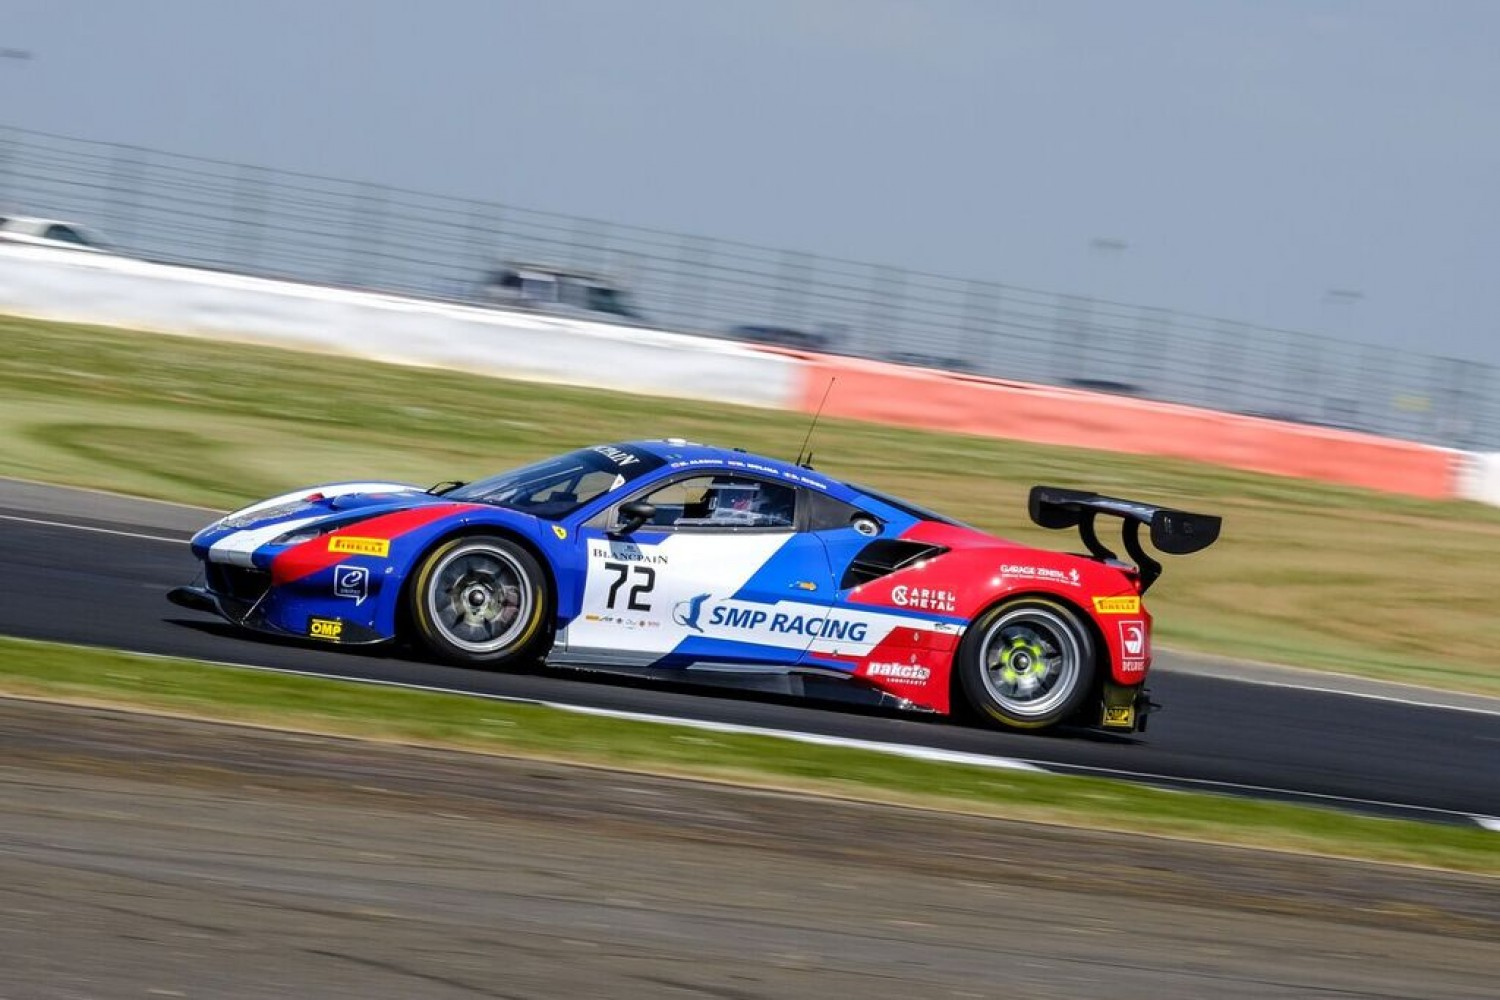 SMP Ferrari hits the front in opening Silverstone practice